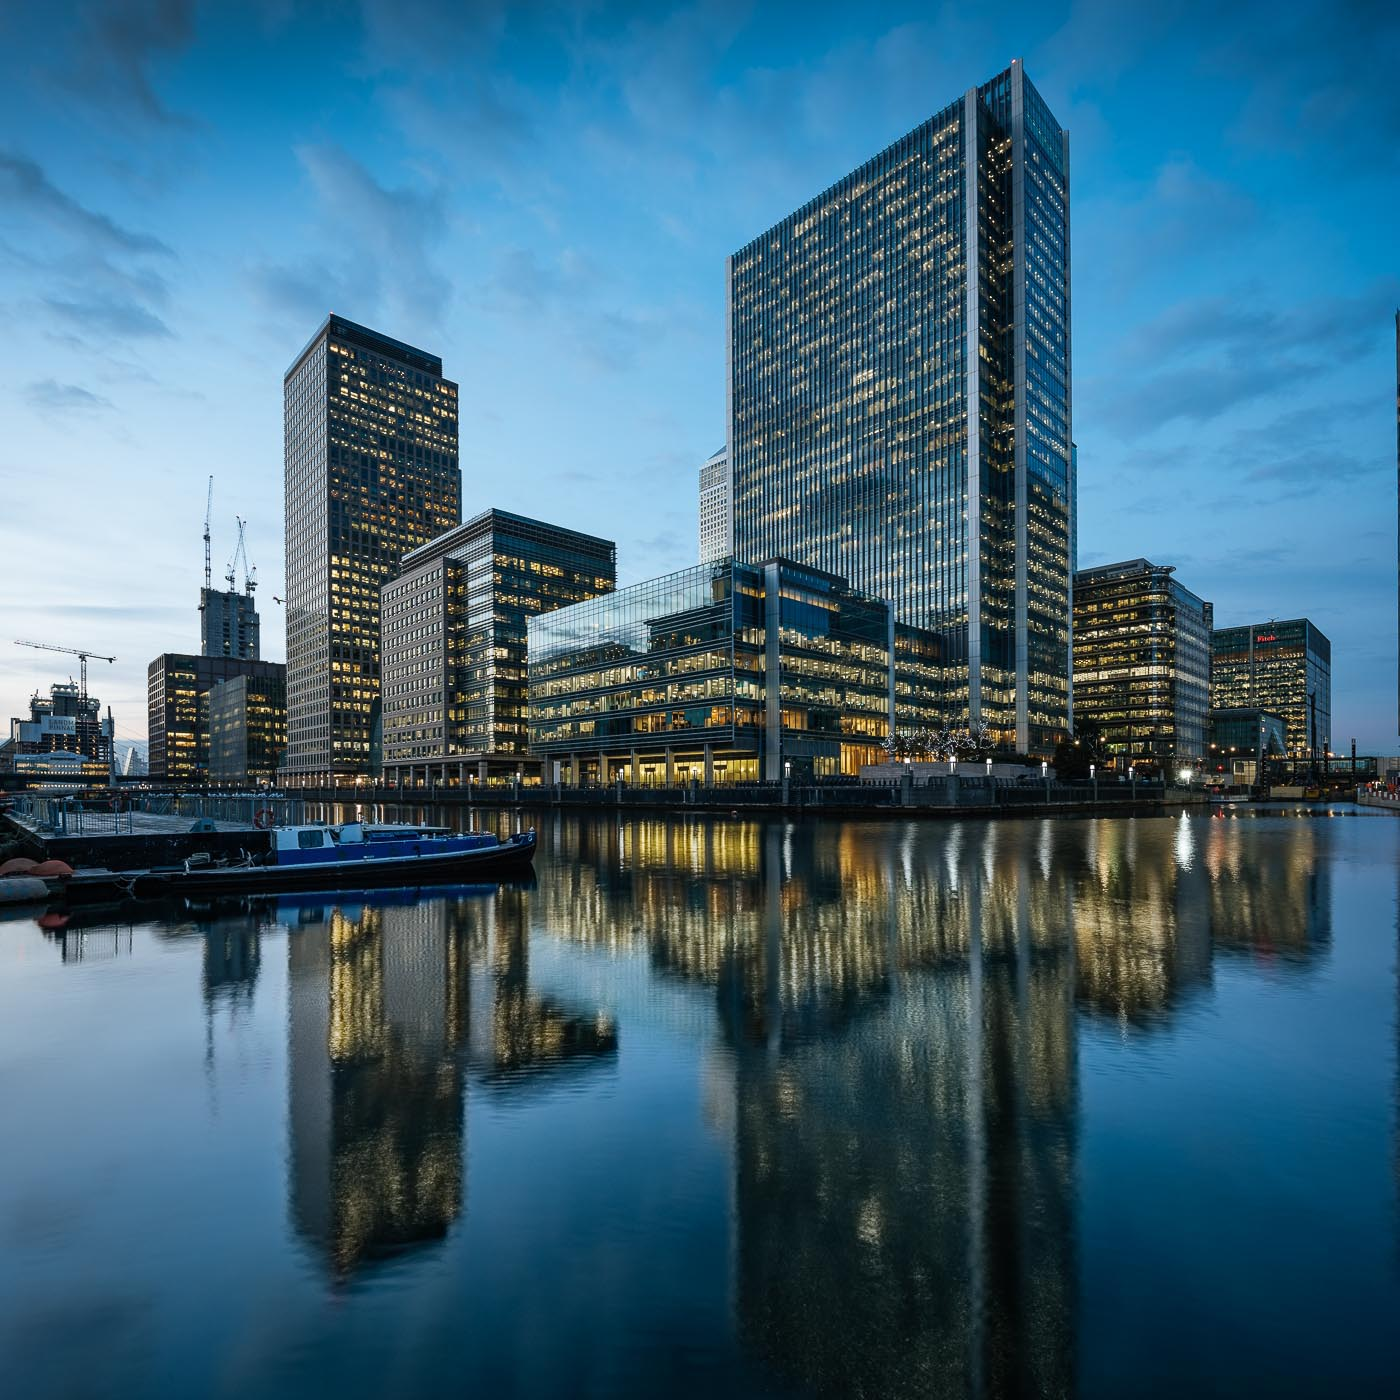 canary-wharf-london-architecture-photography-01a